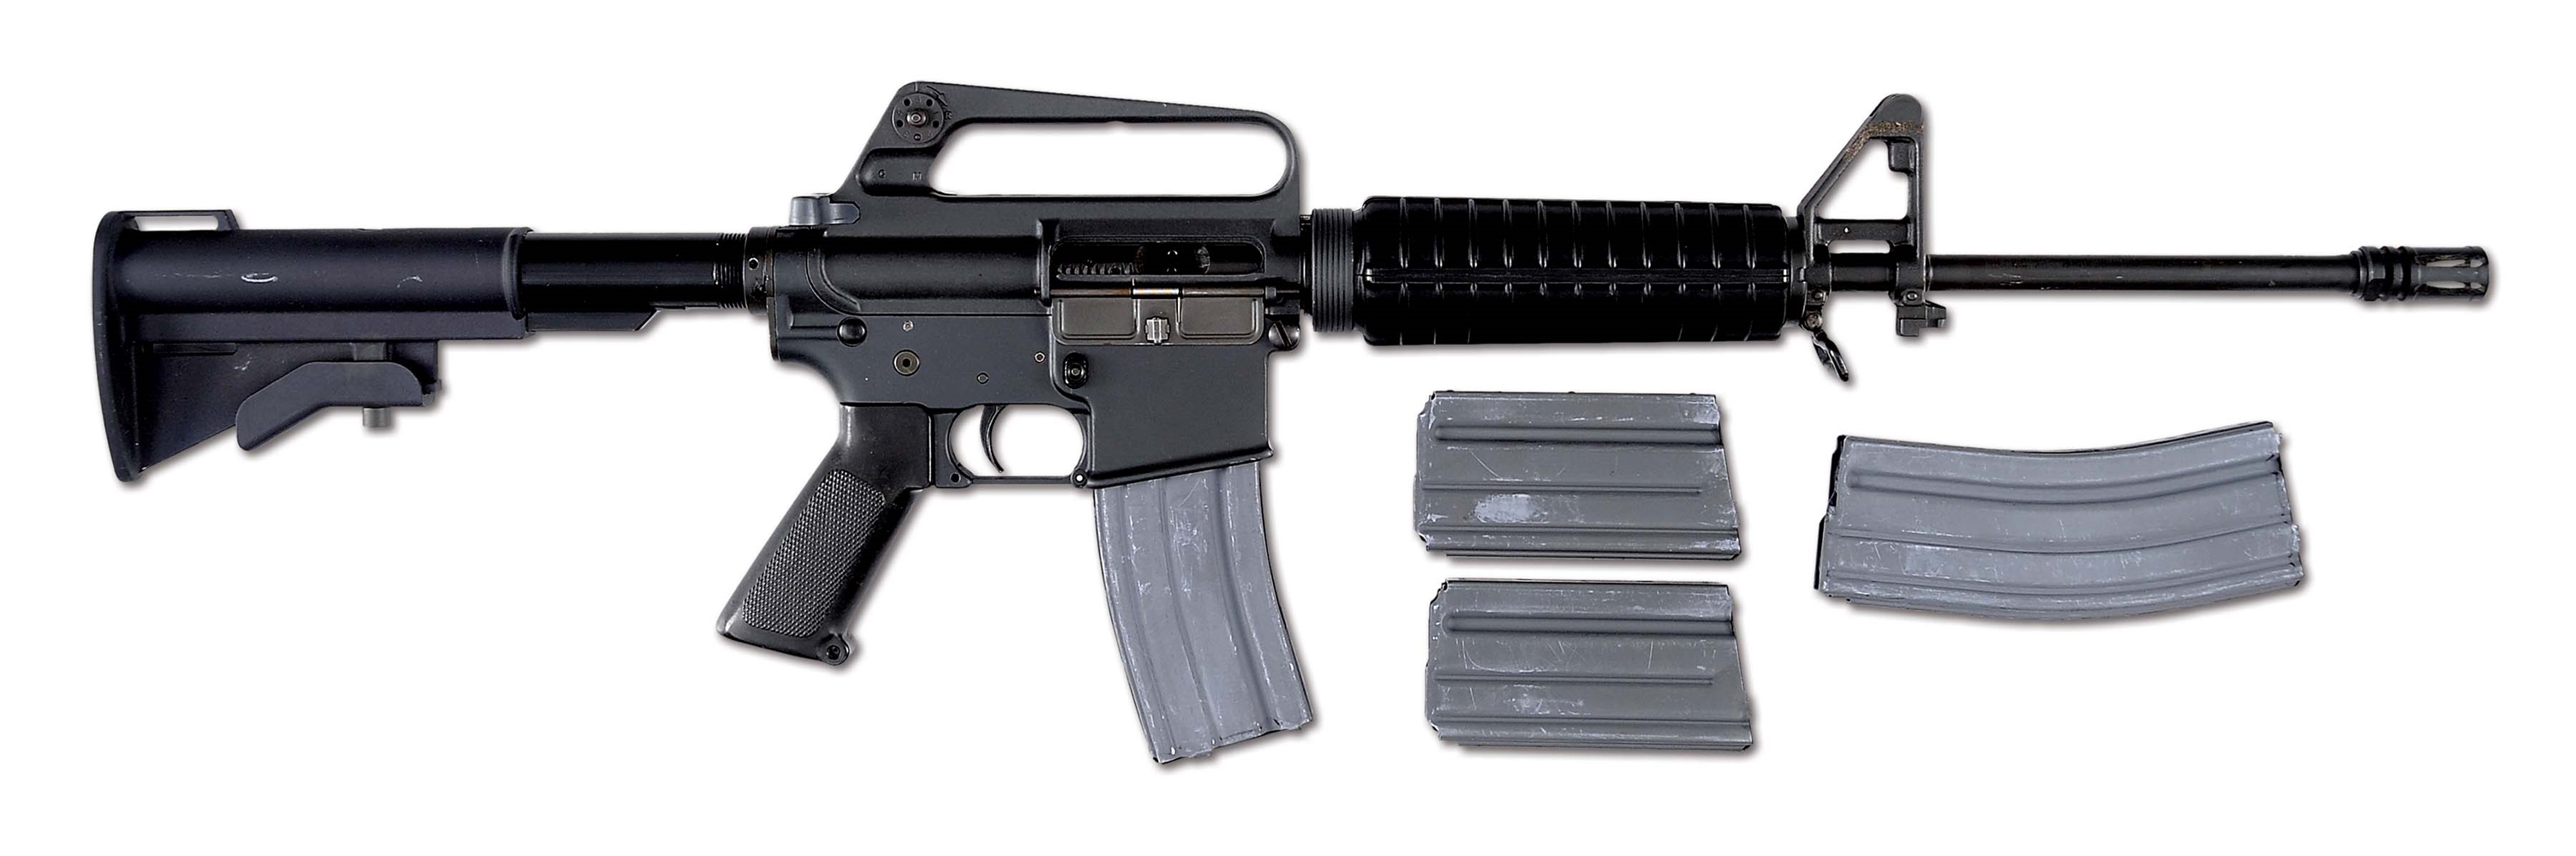 (N) TYROL REGISTERED COLT AR15 SP1 MACHINE GUN WITH TELESCOPING STOCK (FULLY TRANSFERABLE).